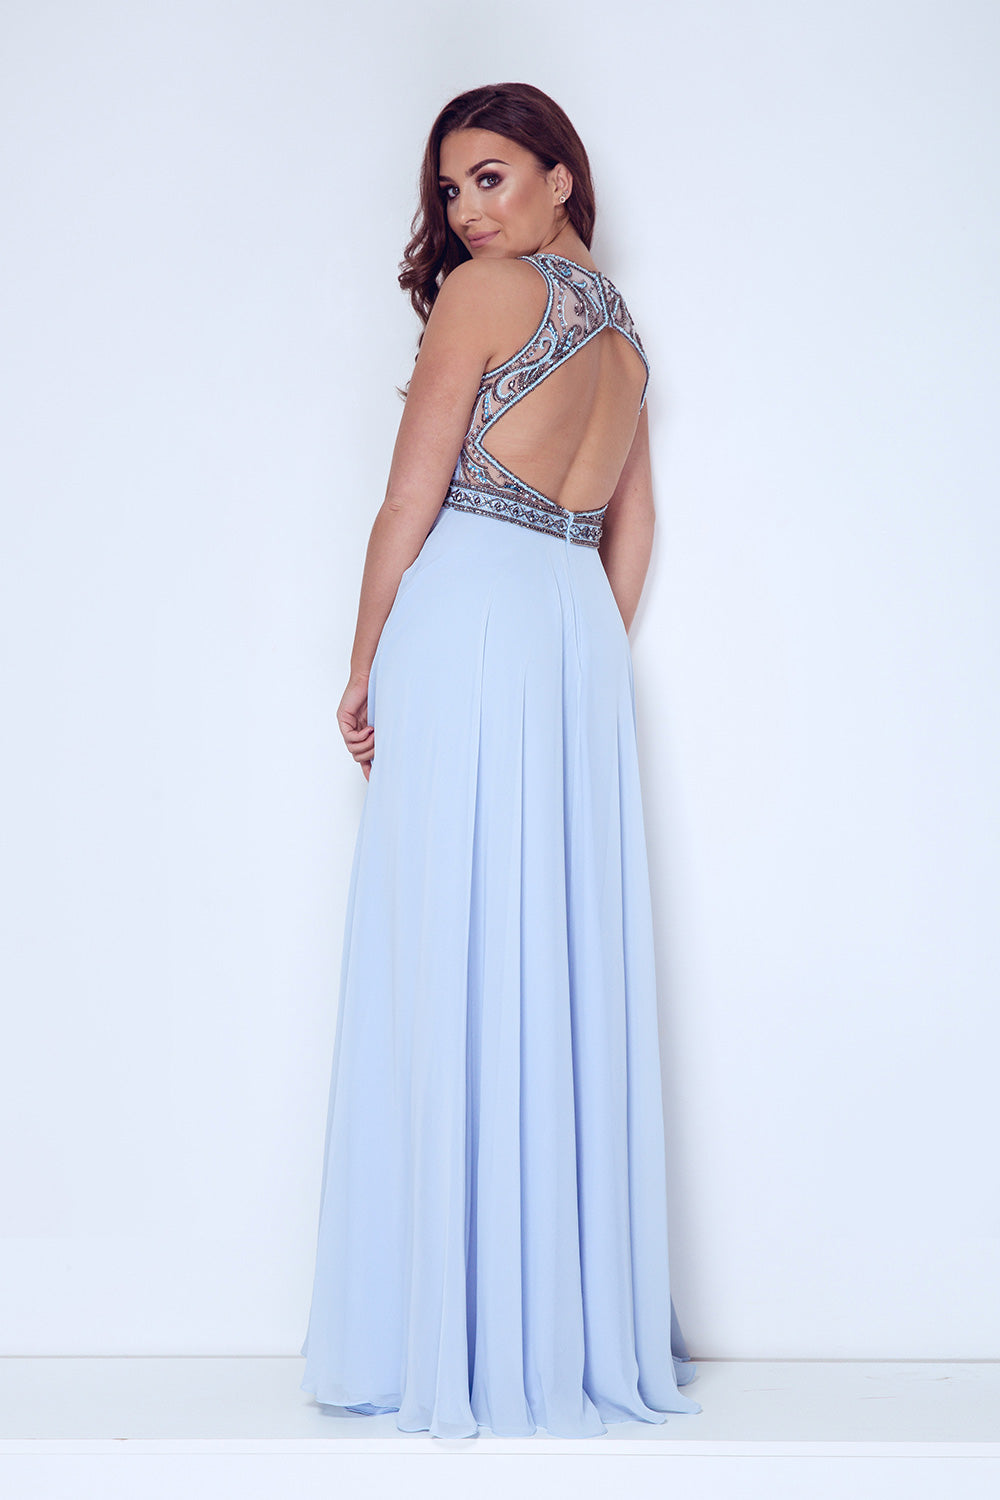 Daiana Long Chiffon Evening Gown - Gissings Boutique